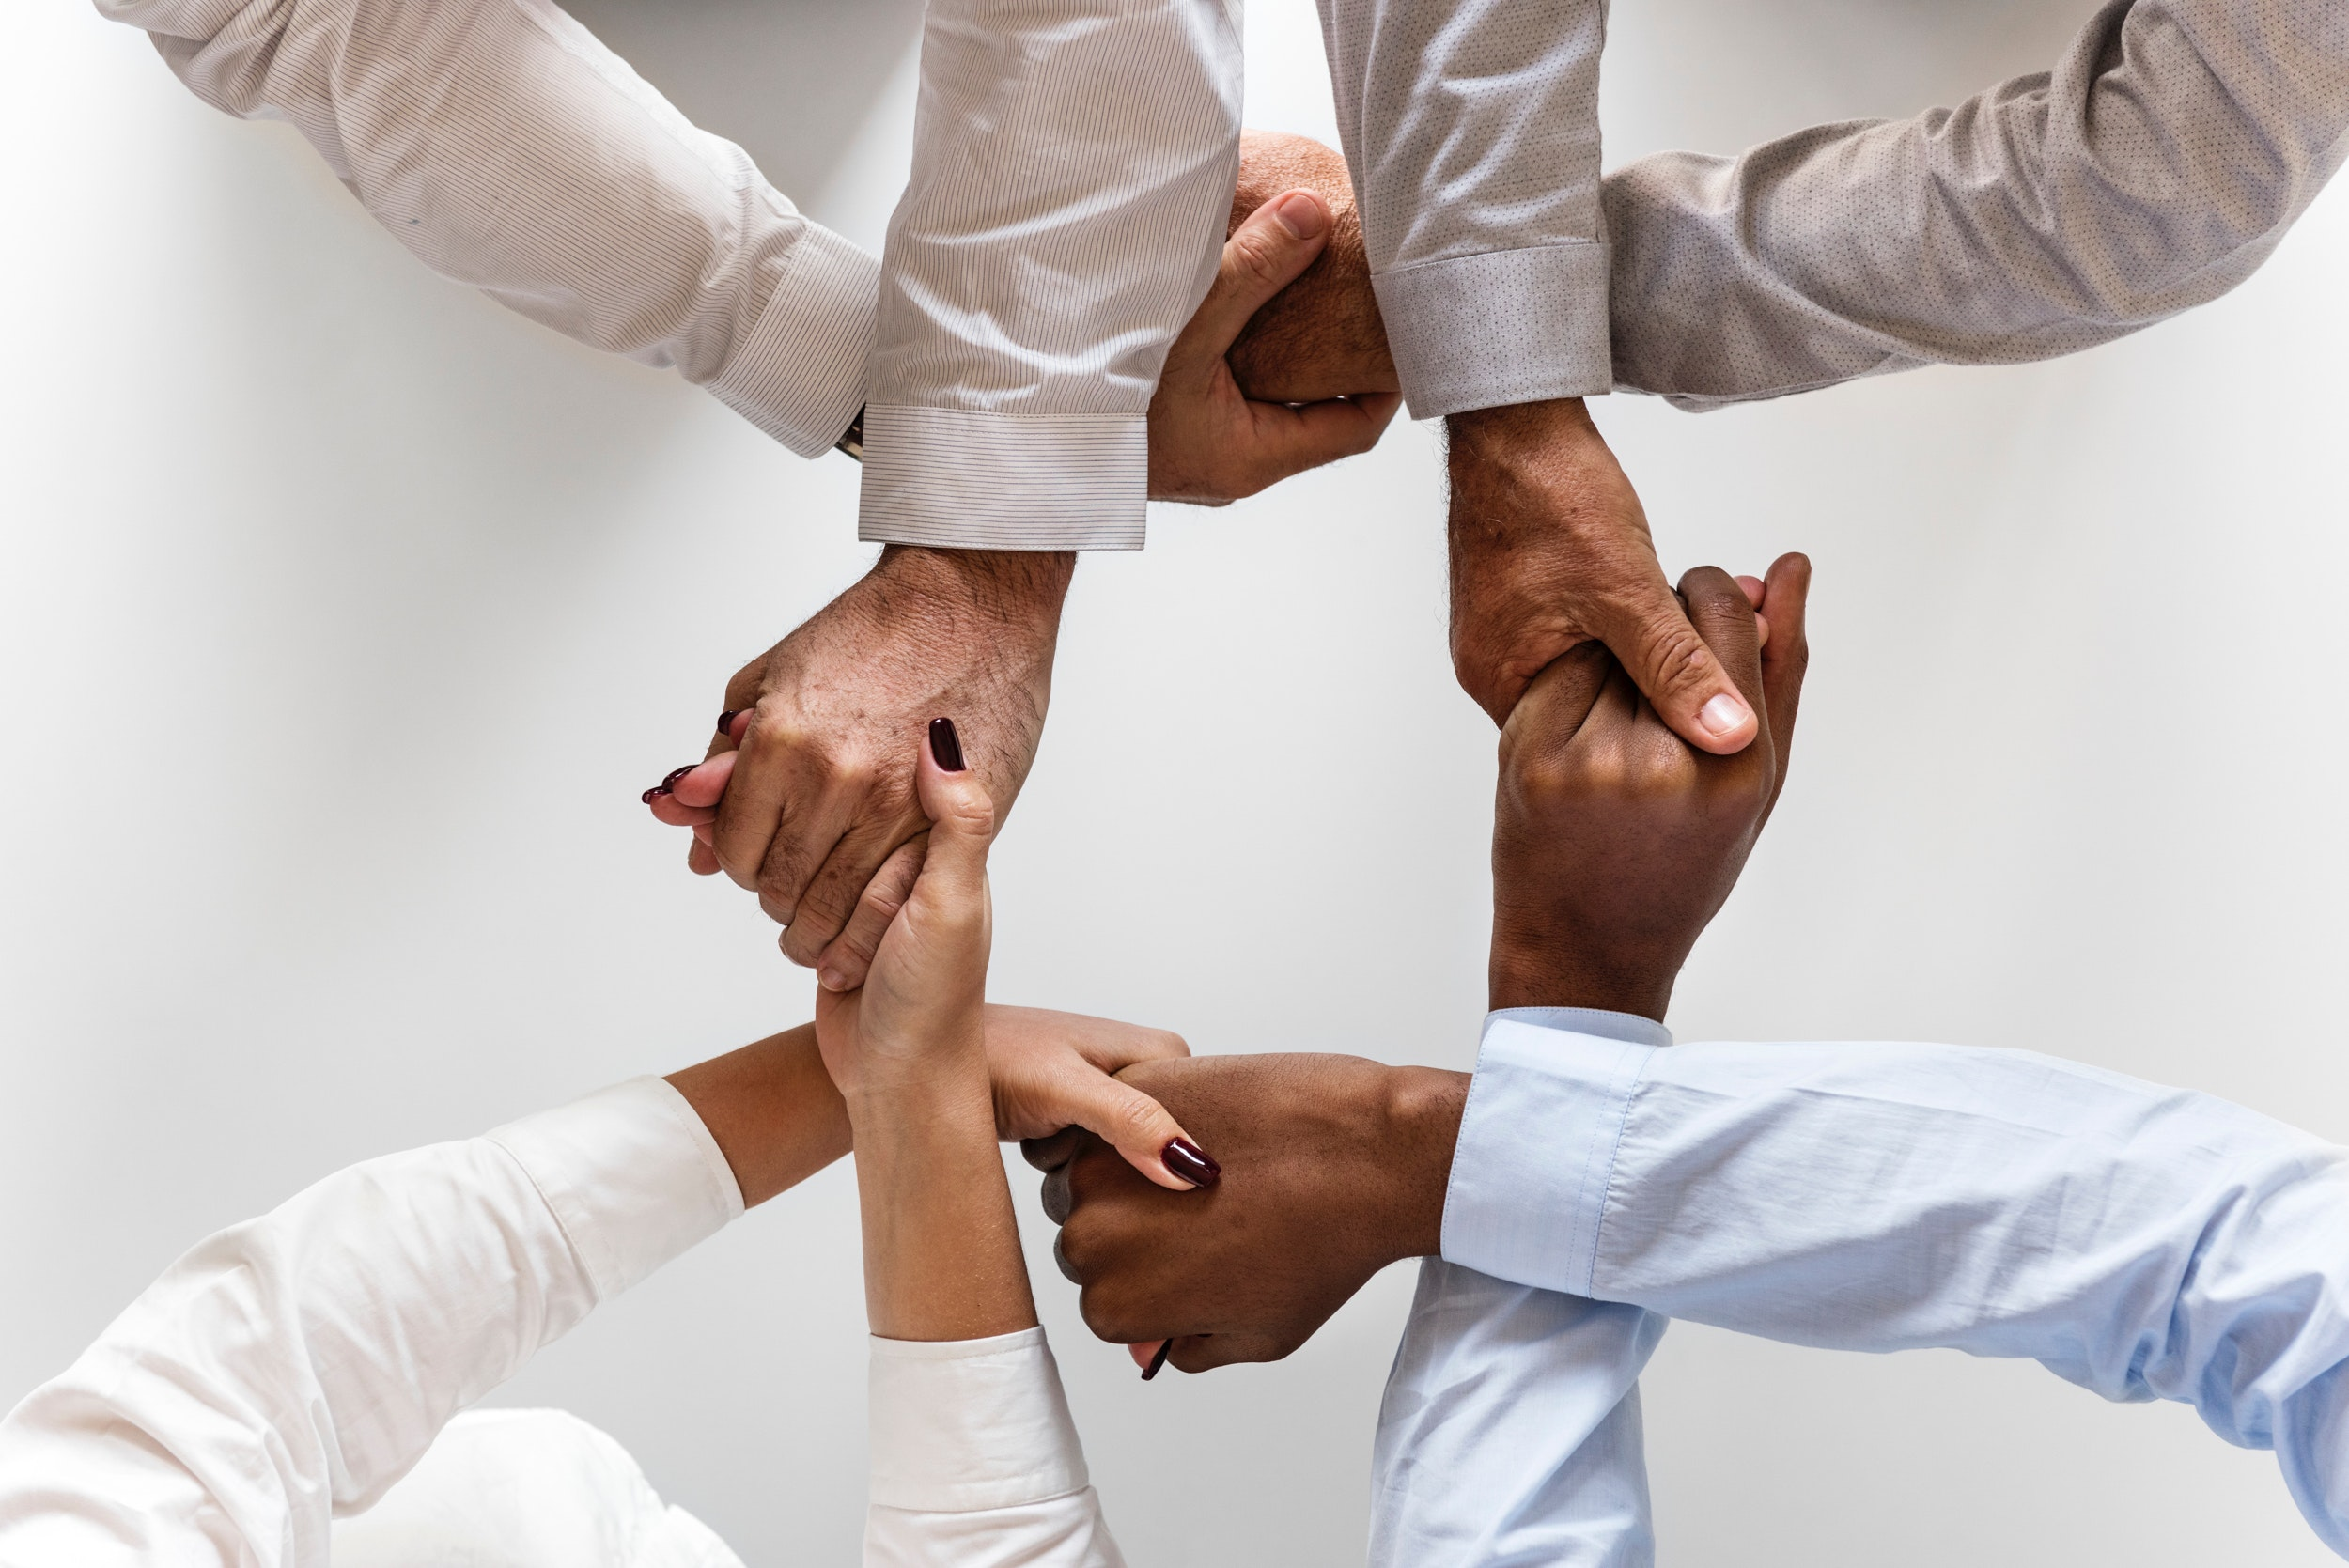 Being flexible means helping out in any role your team requires of you.